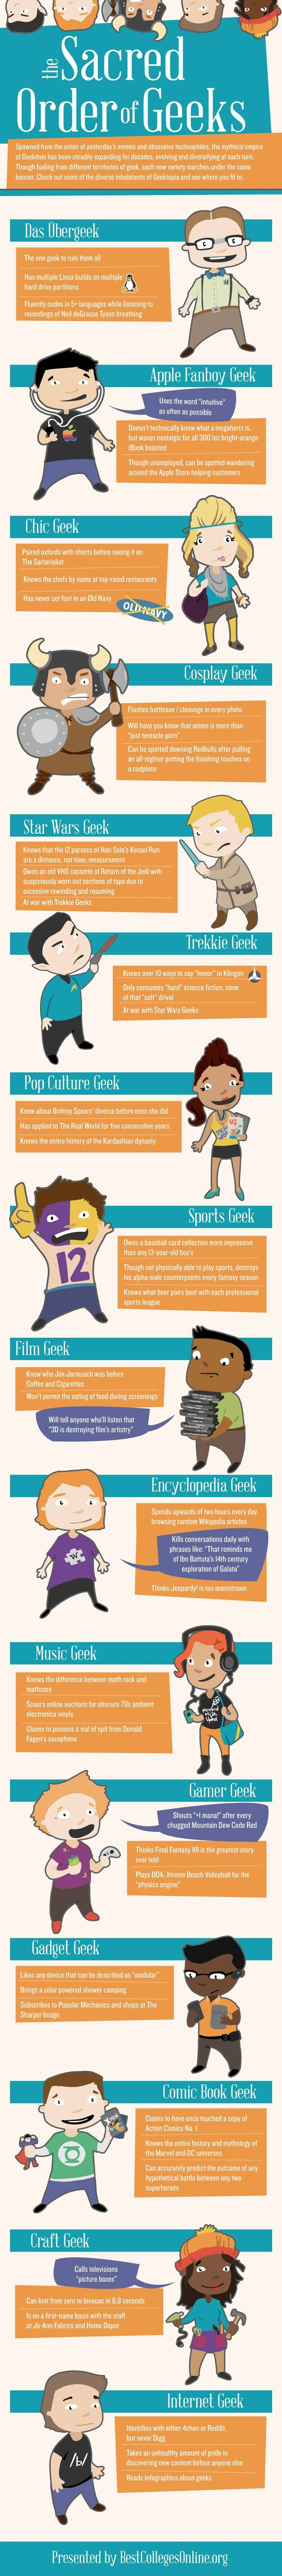 Geek Infographic